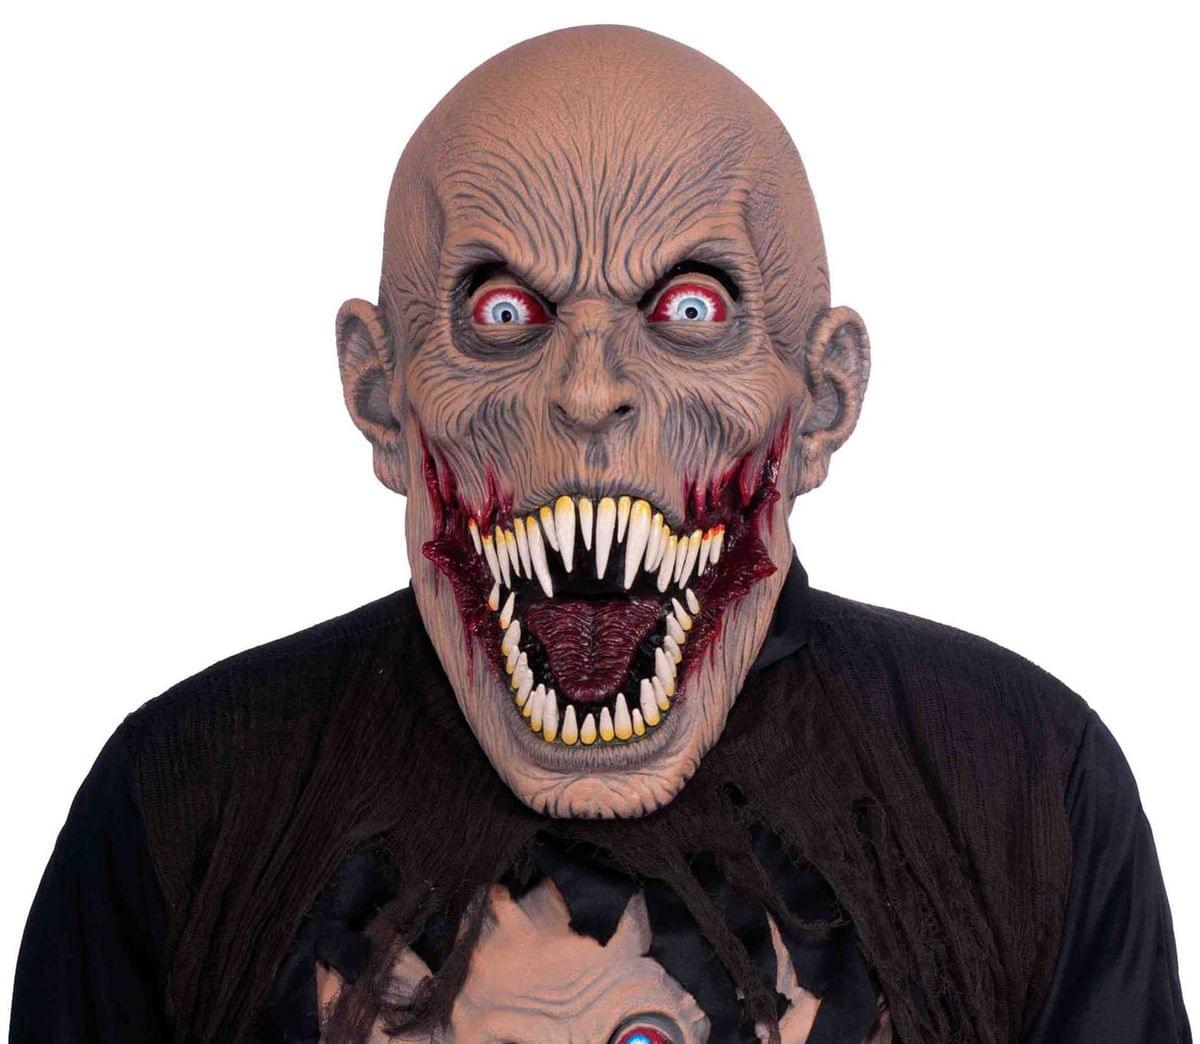 Vicious Mutant Alien Adult Costume Horror Mask One Size Fits Most